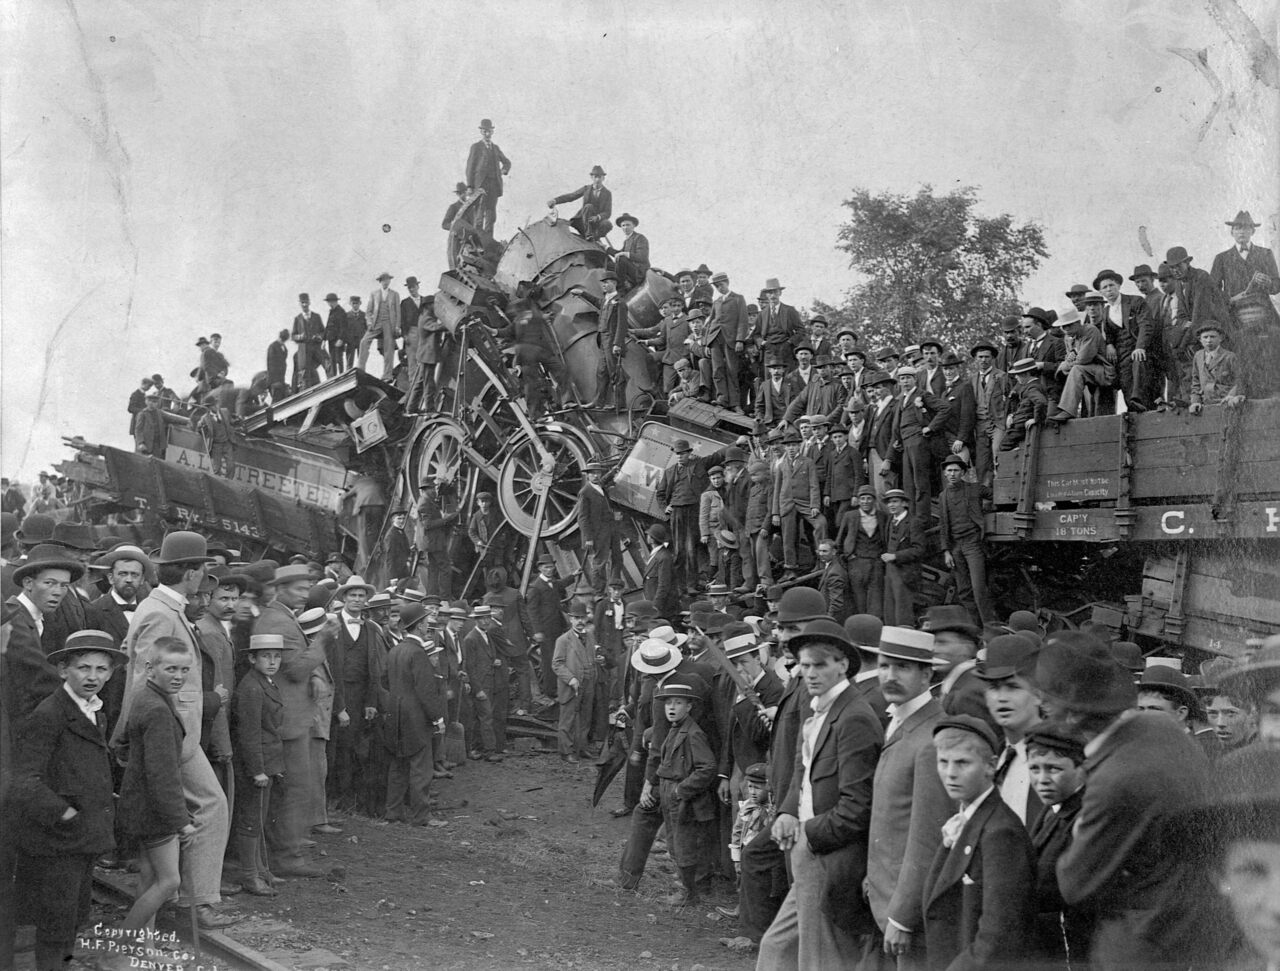 A crowd swarms over the wreckage to claim souvenirs in Buckeye Park in Ohio after a staged train wreck in 1896.